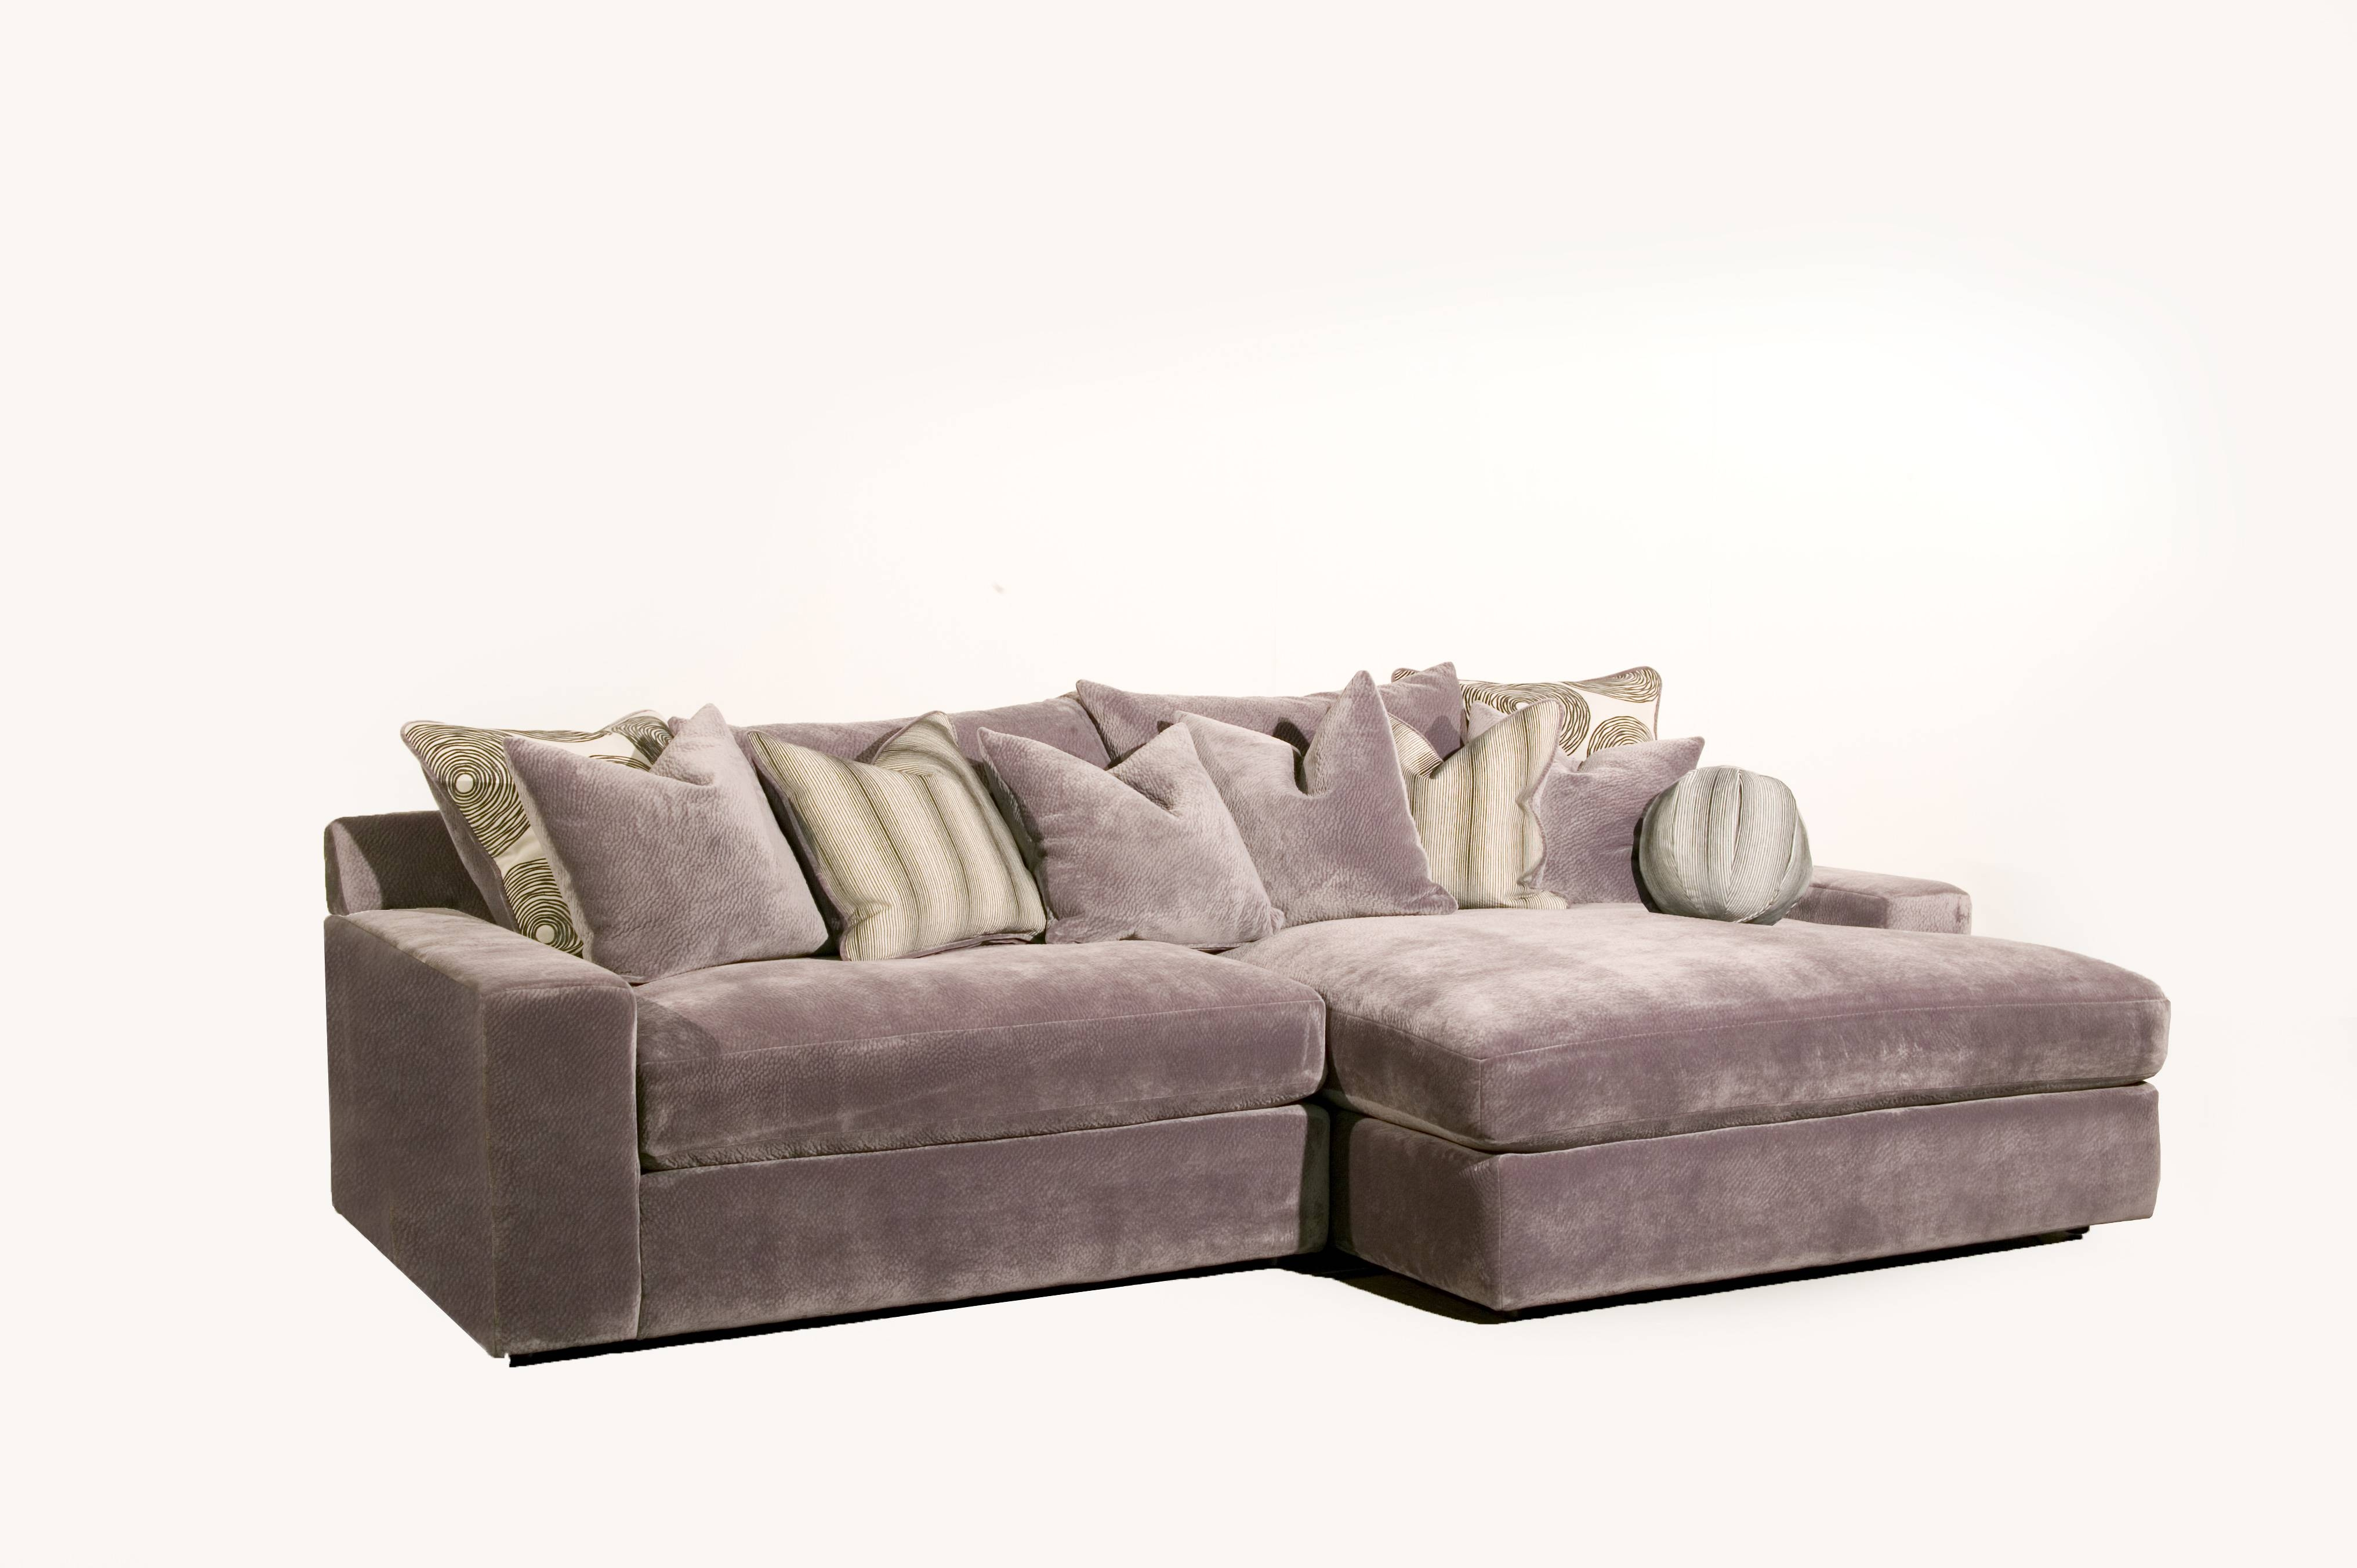 Robert Michaels Sofas And Sectionals inside Champion Sectional Sofa (Image 24 of 30)